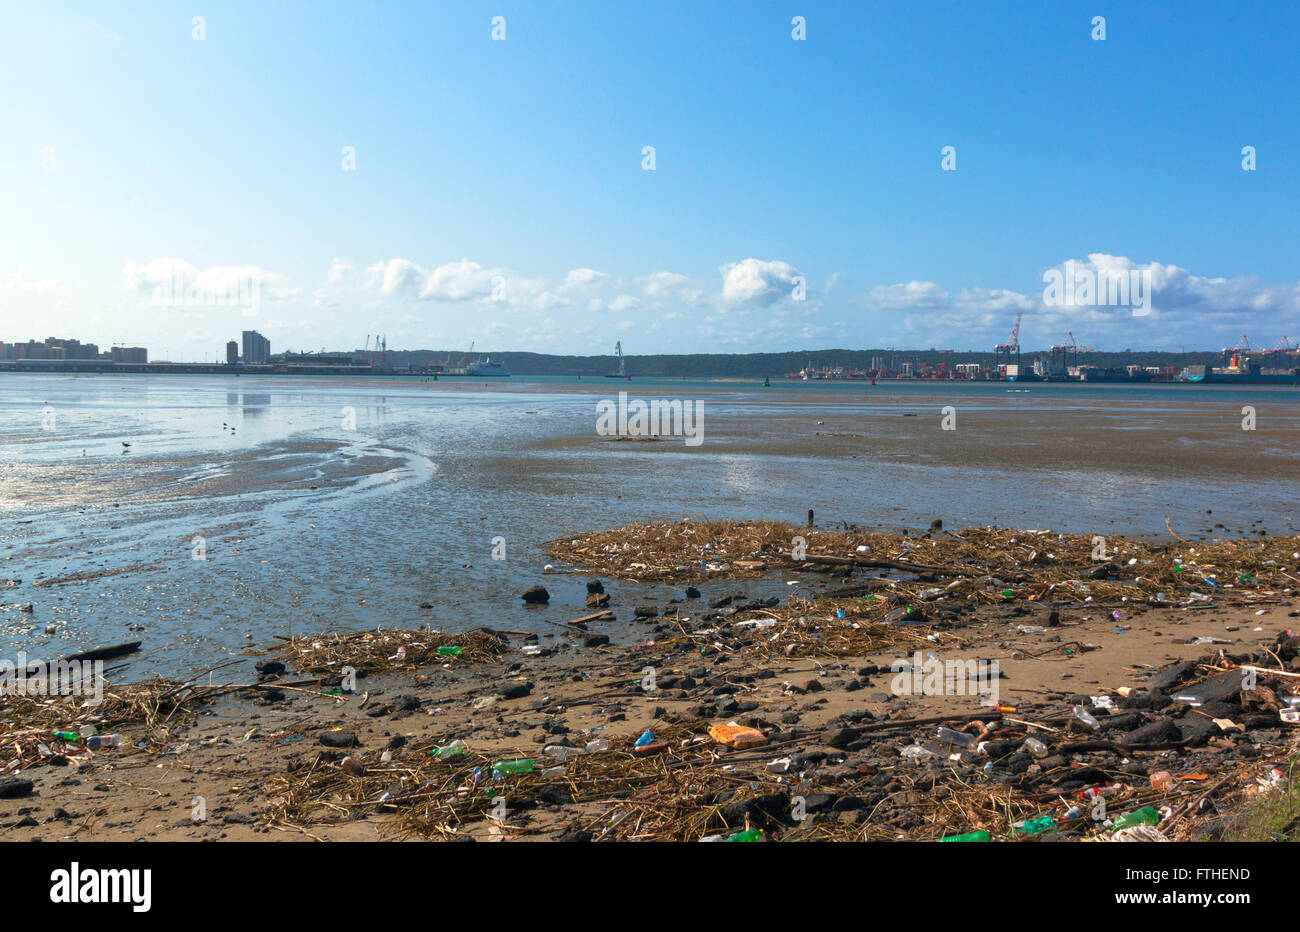 pollution and litter in the shallows of harbor - Stock Image